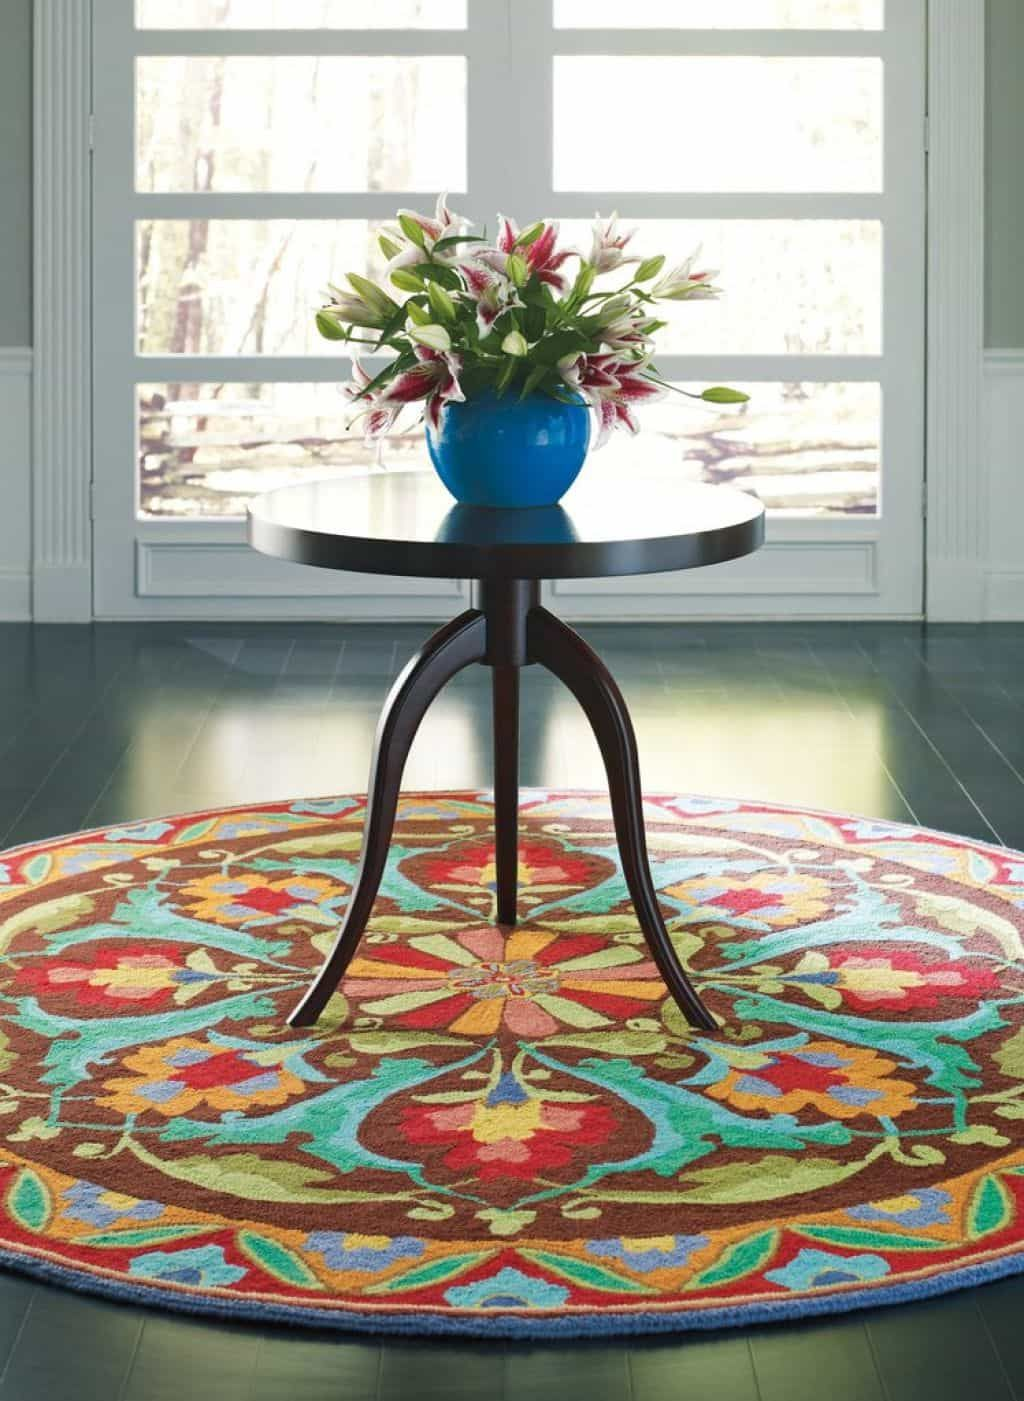 Decorating Foyer With Round Rugs Round Rugs Round Area Rugs Handmade Area Rugs